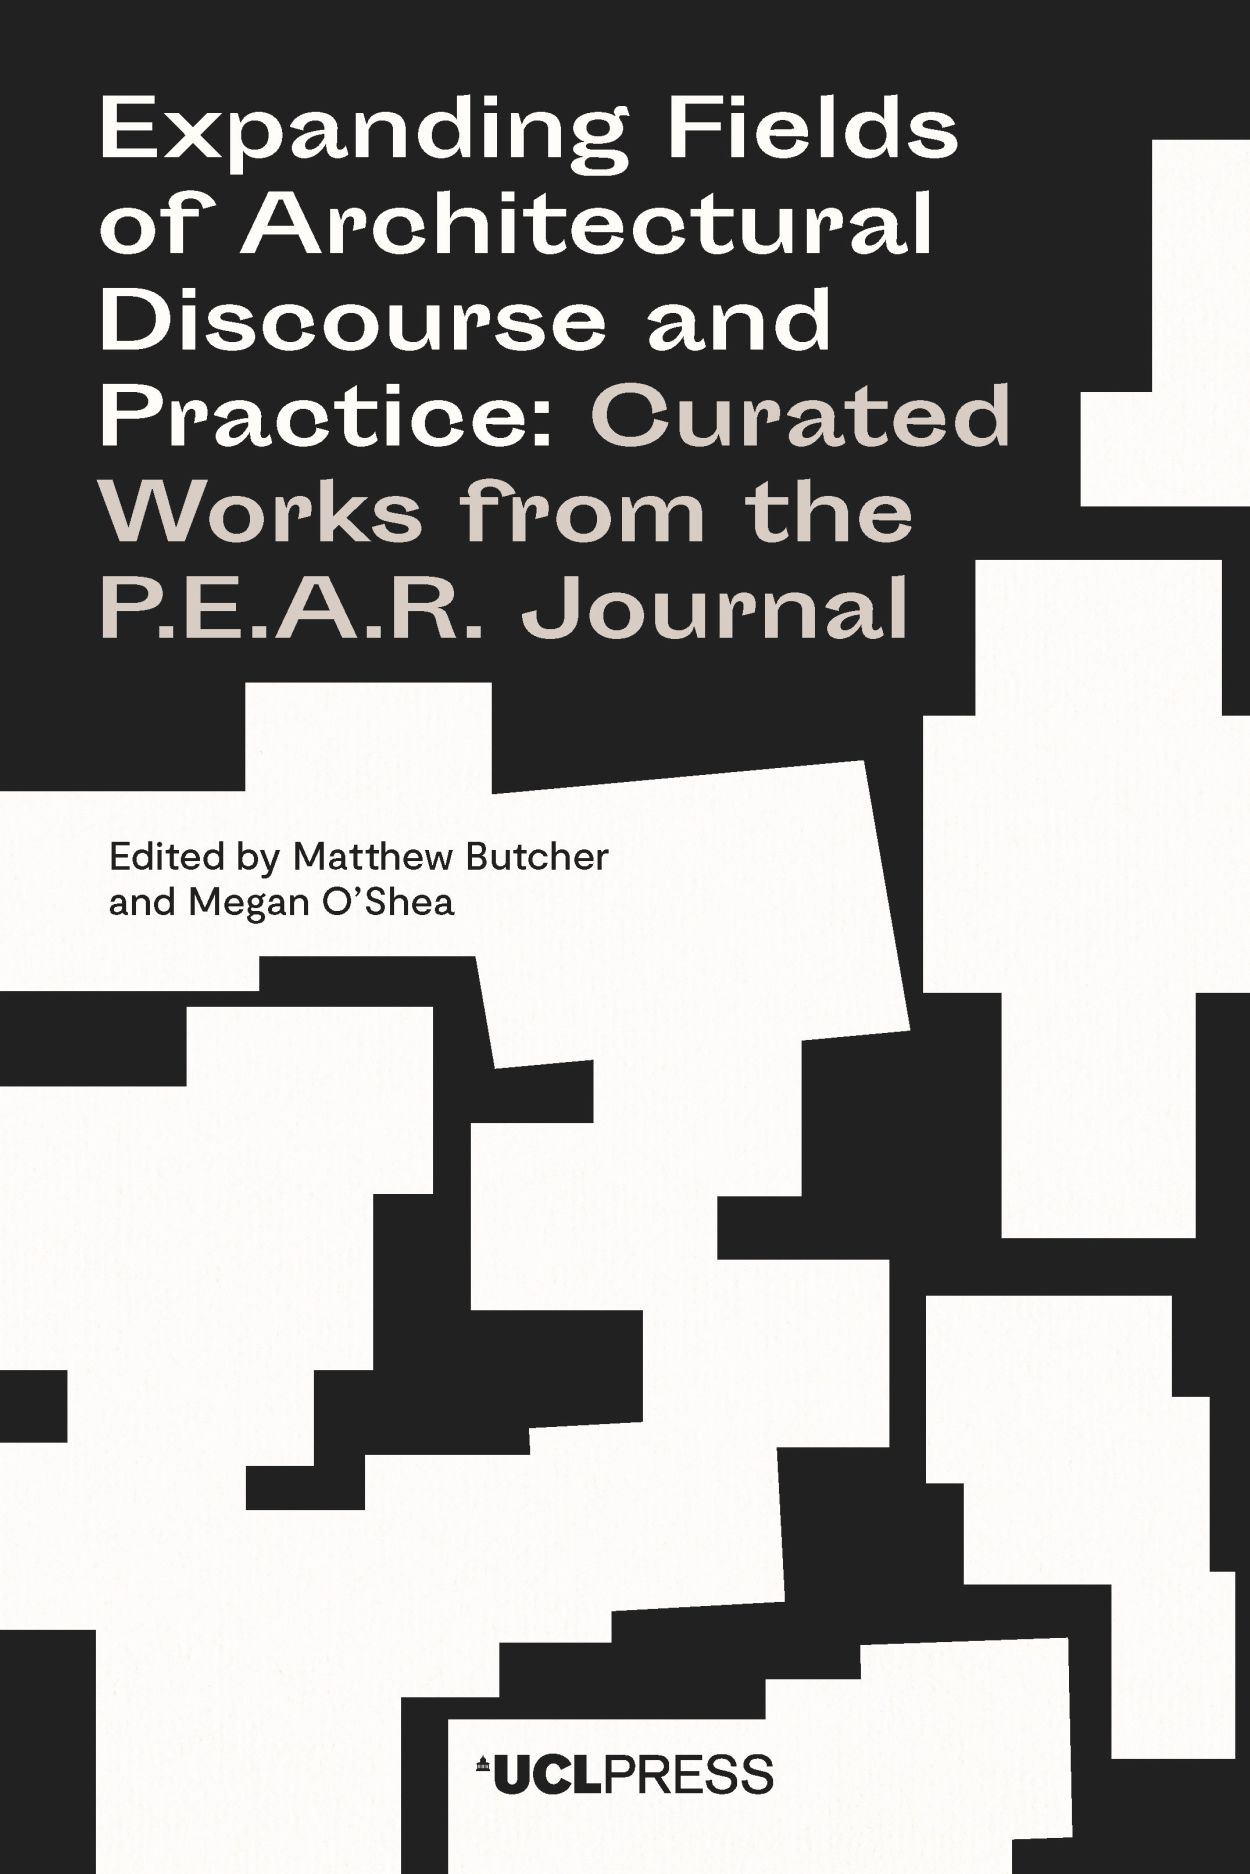 Expanding Fields of Architectural Discourse and Practice: Curated Works from the P.E.A.R. Journal